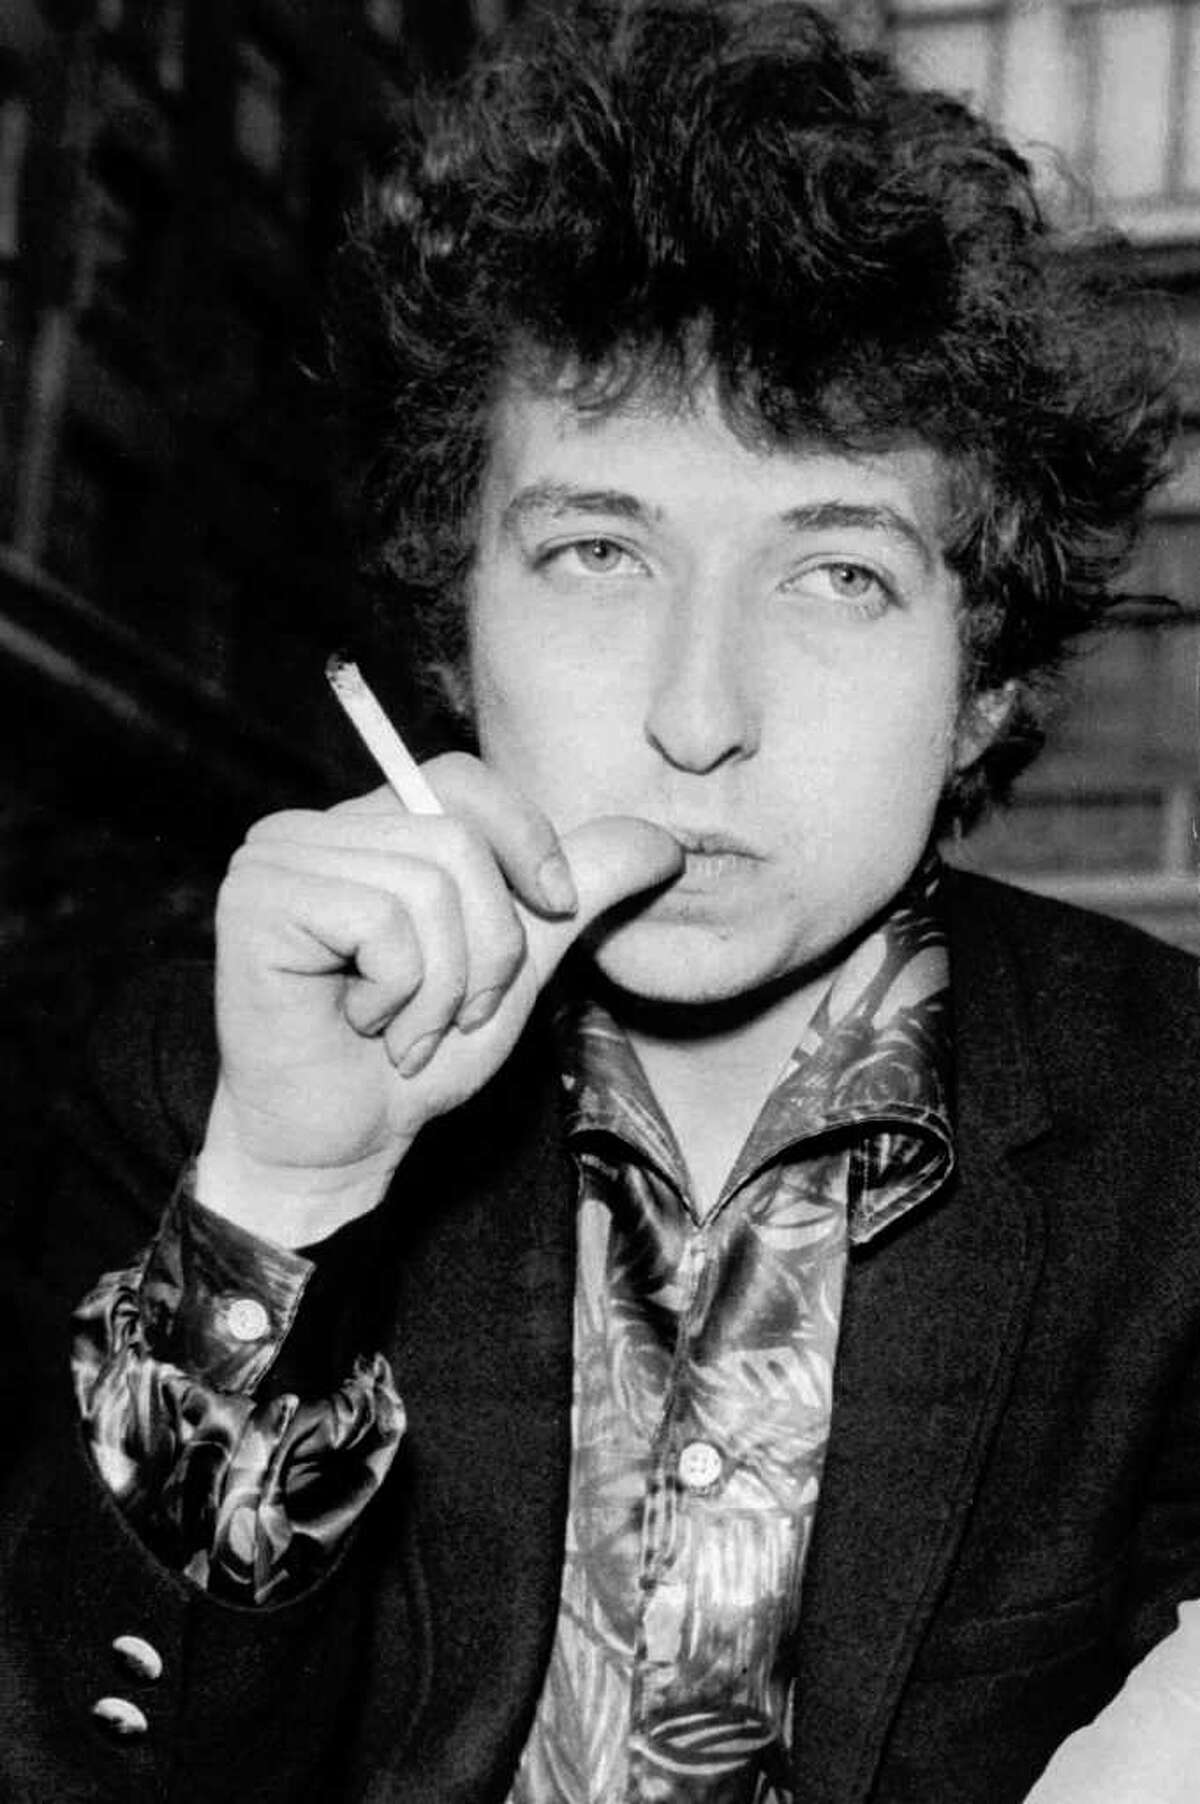 FILE--Singer Bob Dylan is seen in this April 27, 1965 file picture in London. Outraging some members of the Sixties generation, a major Canadian bank is using Dylan's 1964 protest anthem, 'The Times They Are A-Changin'' as the theme of its current public relations campaign. Fans are aiming their wrath not only at the bank of Montreal but also at Dylan. (AP Photo)